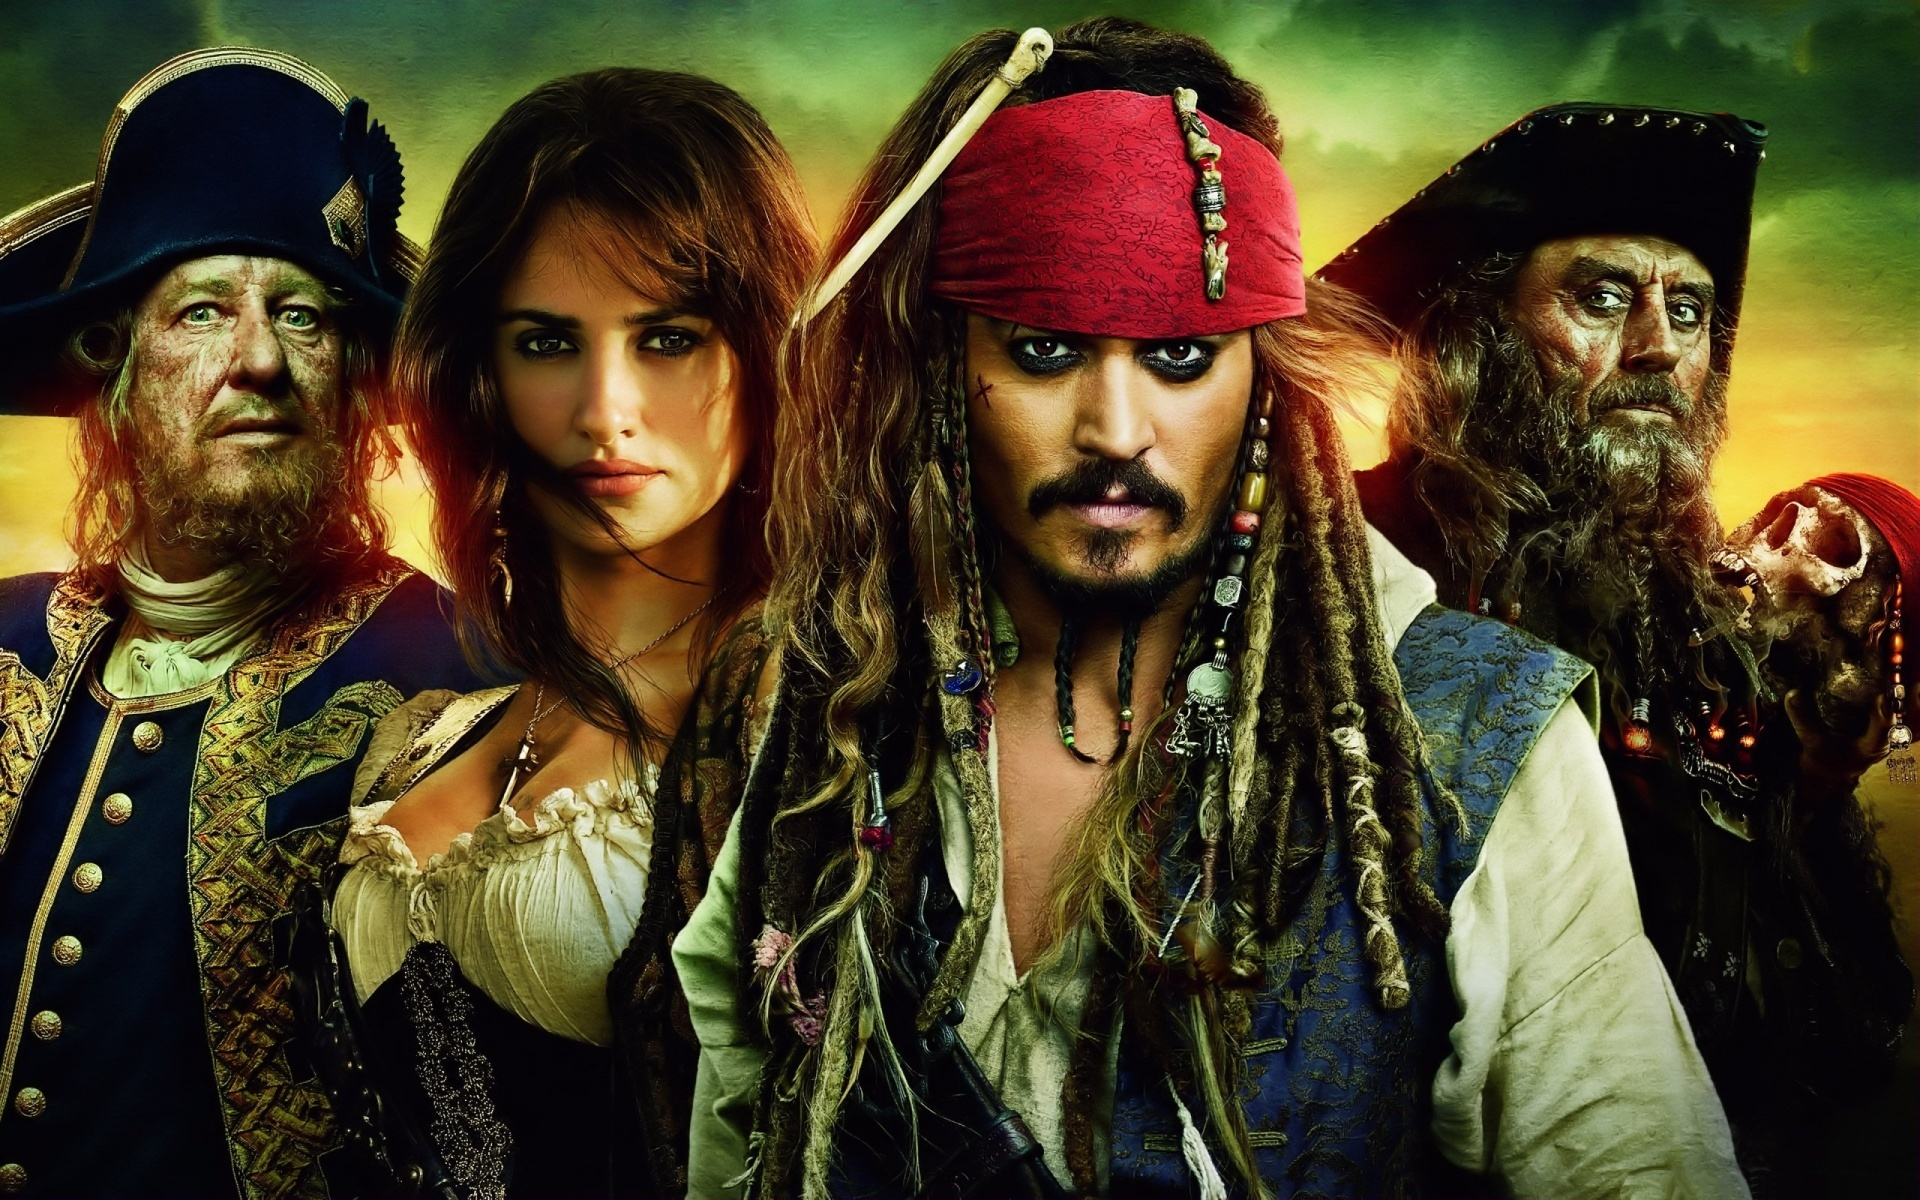 reaction paper for pirates of the How to write a reaction paper a reaction or response paper requires the writer to analyze a text, then develop commentary related to it it is a popular academic assignment because it requires thoughtful reading, research, and writing.